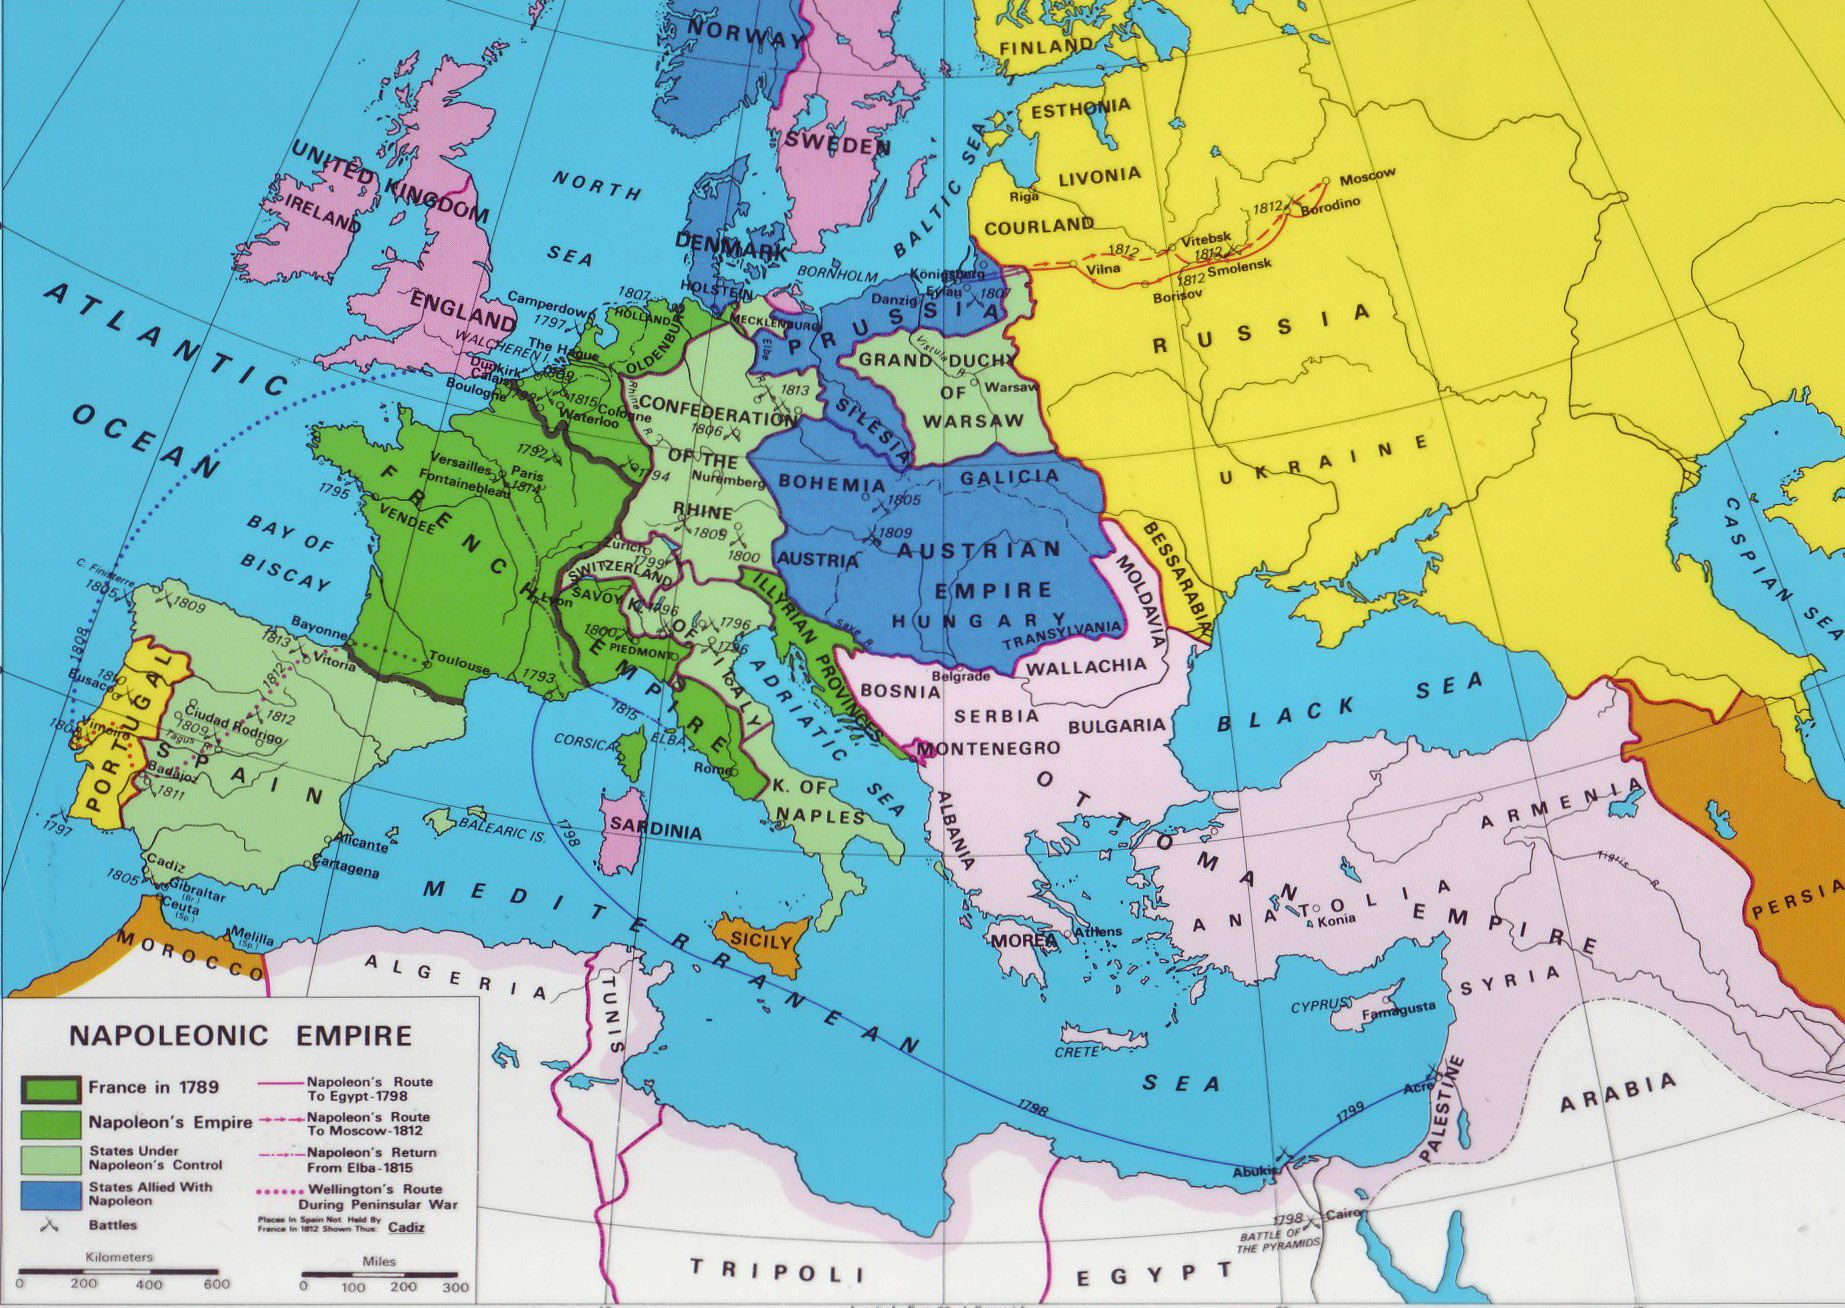 Map of Napoleon's empire in 1812, just before his invasion ...